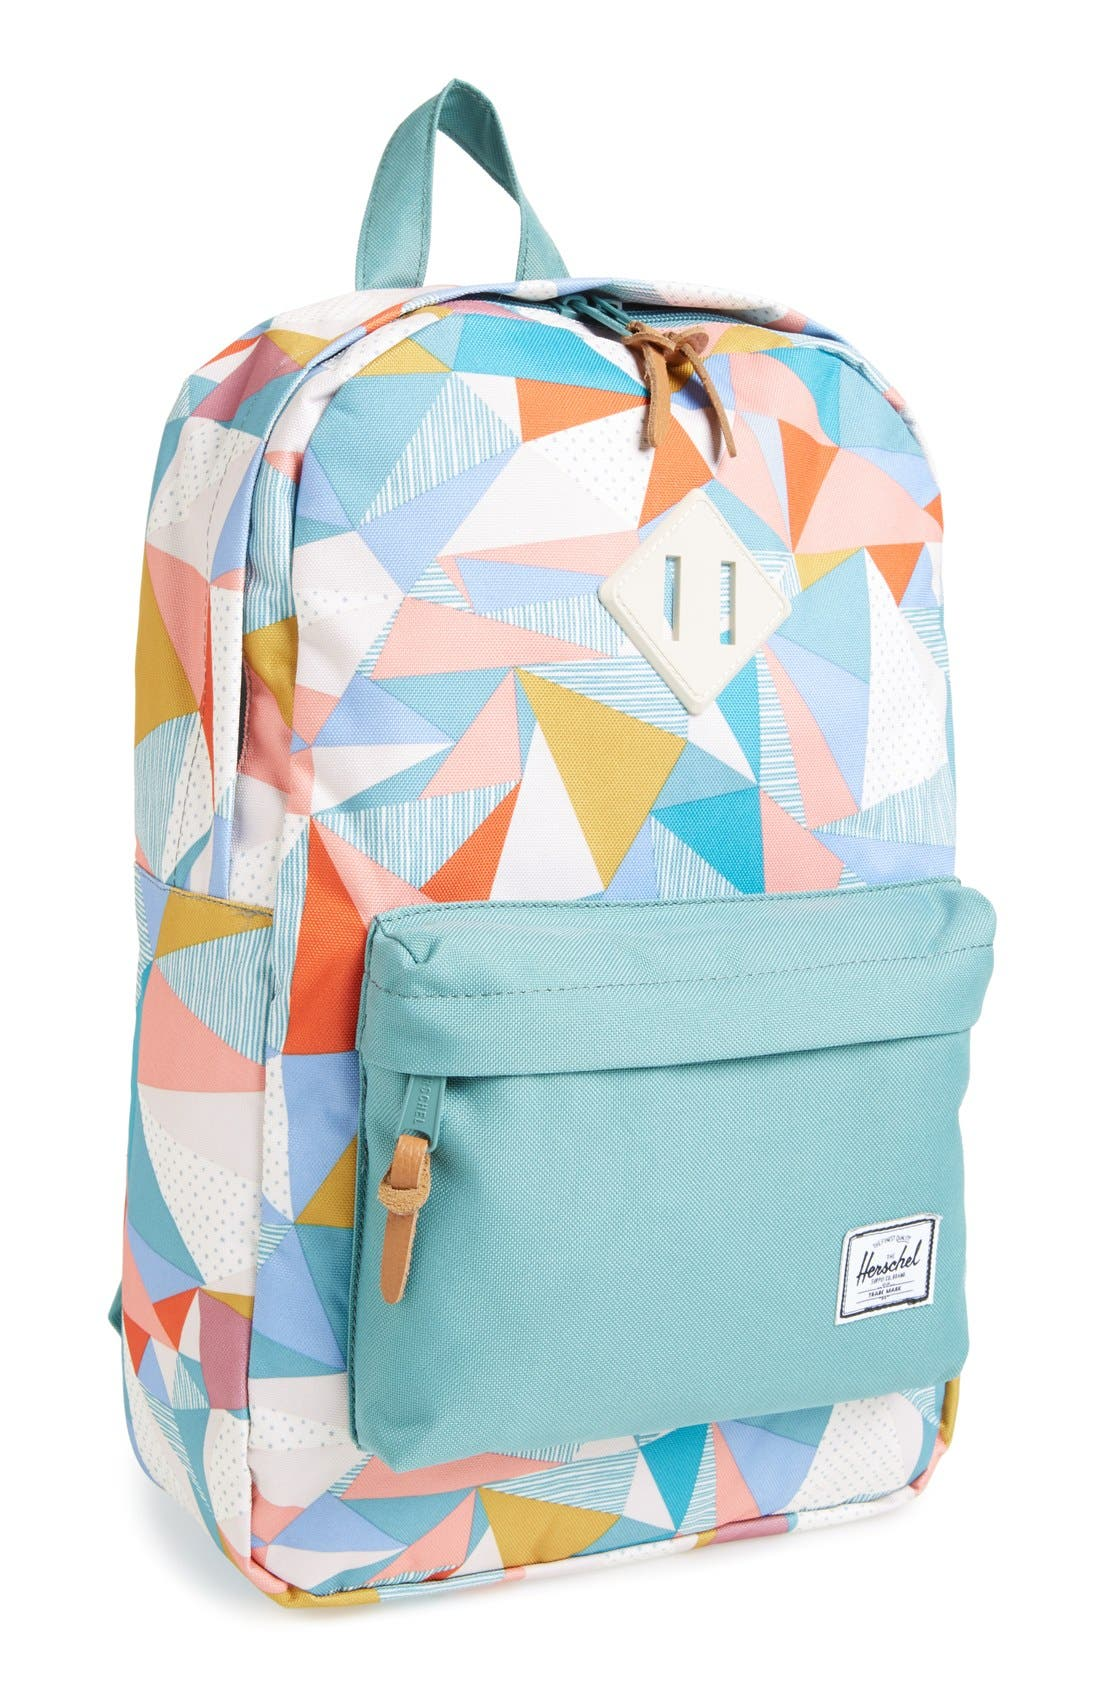 Alternate Image 1 Selected - Herschel Supply Co. 'Heritage - Medium' Backpack